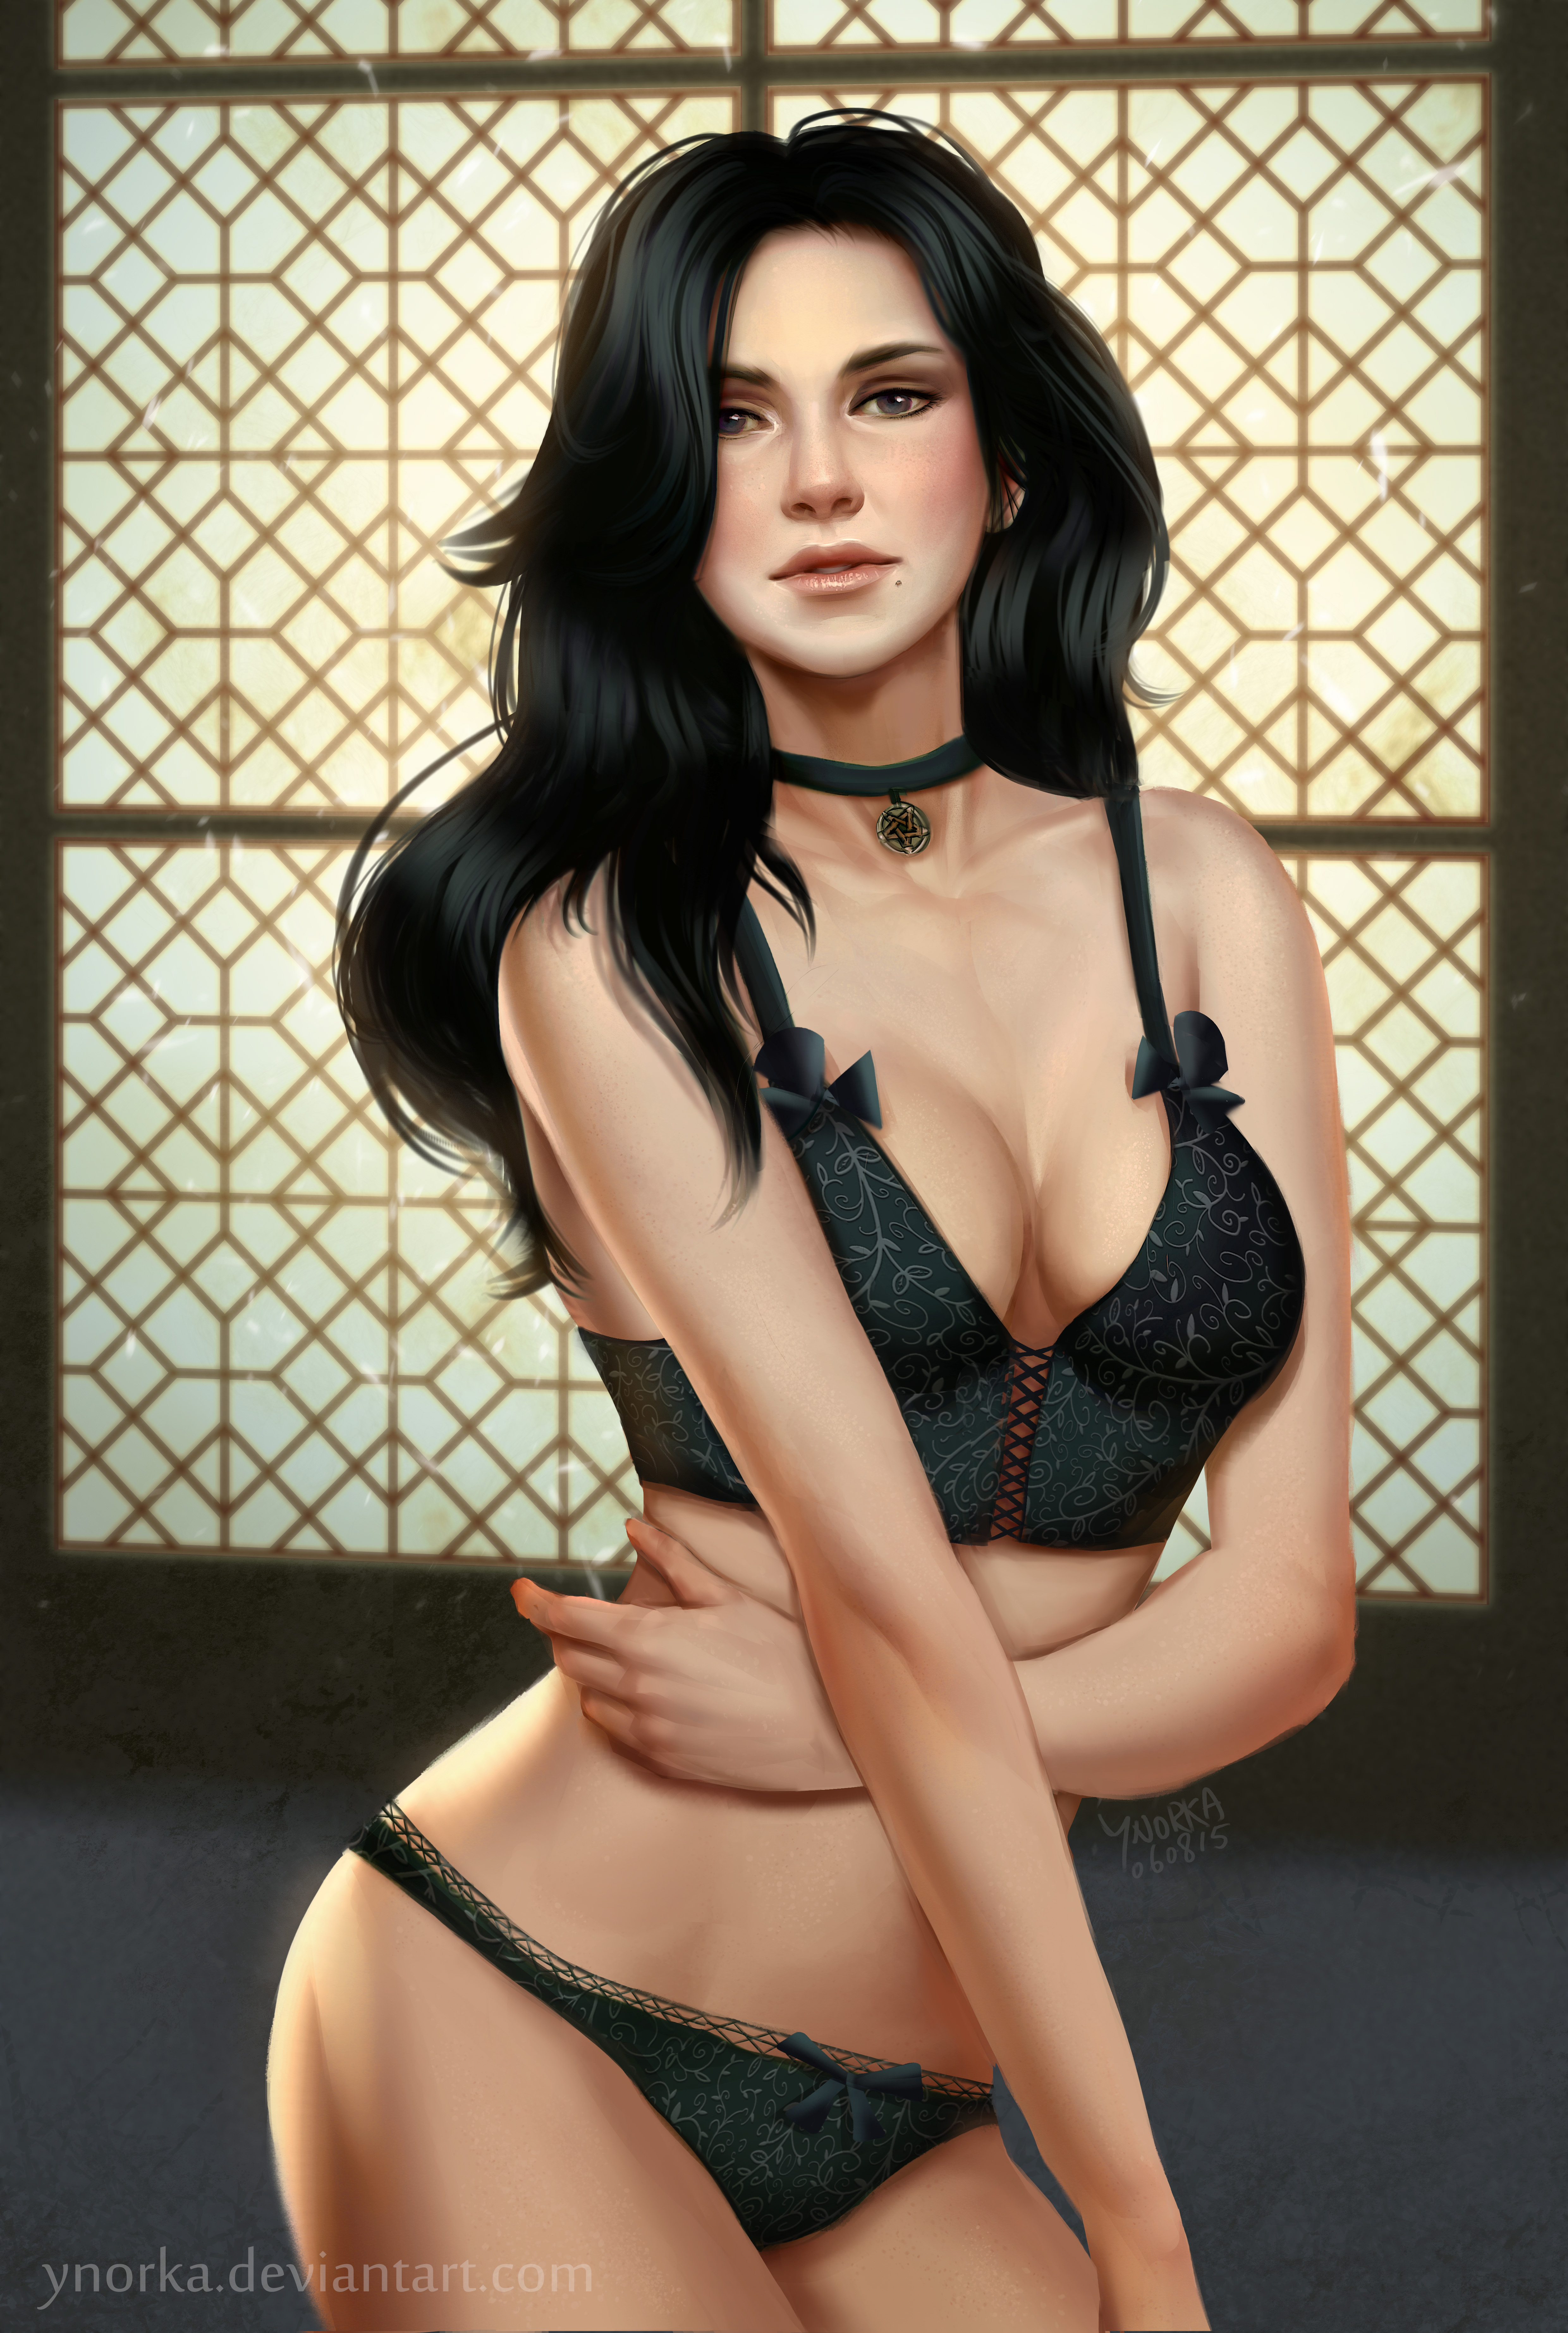 Yennefer with large tits